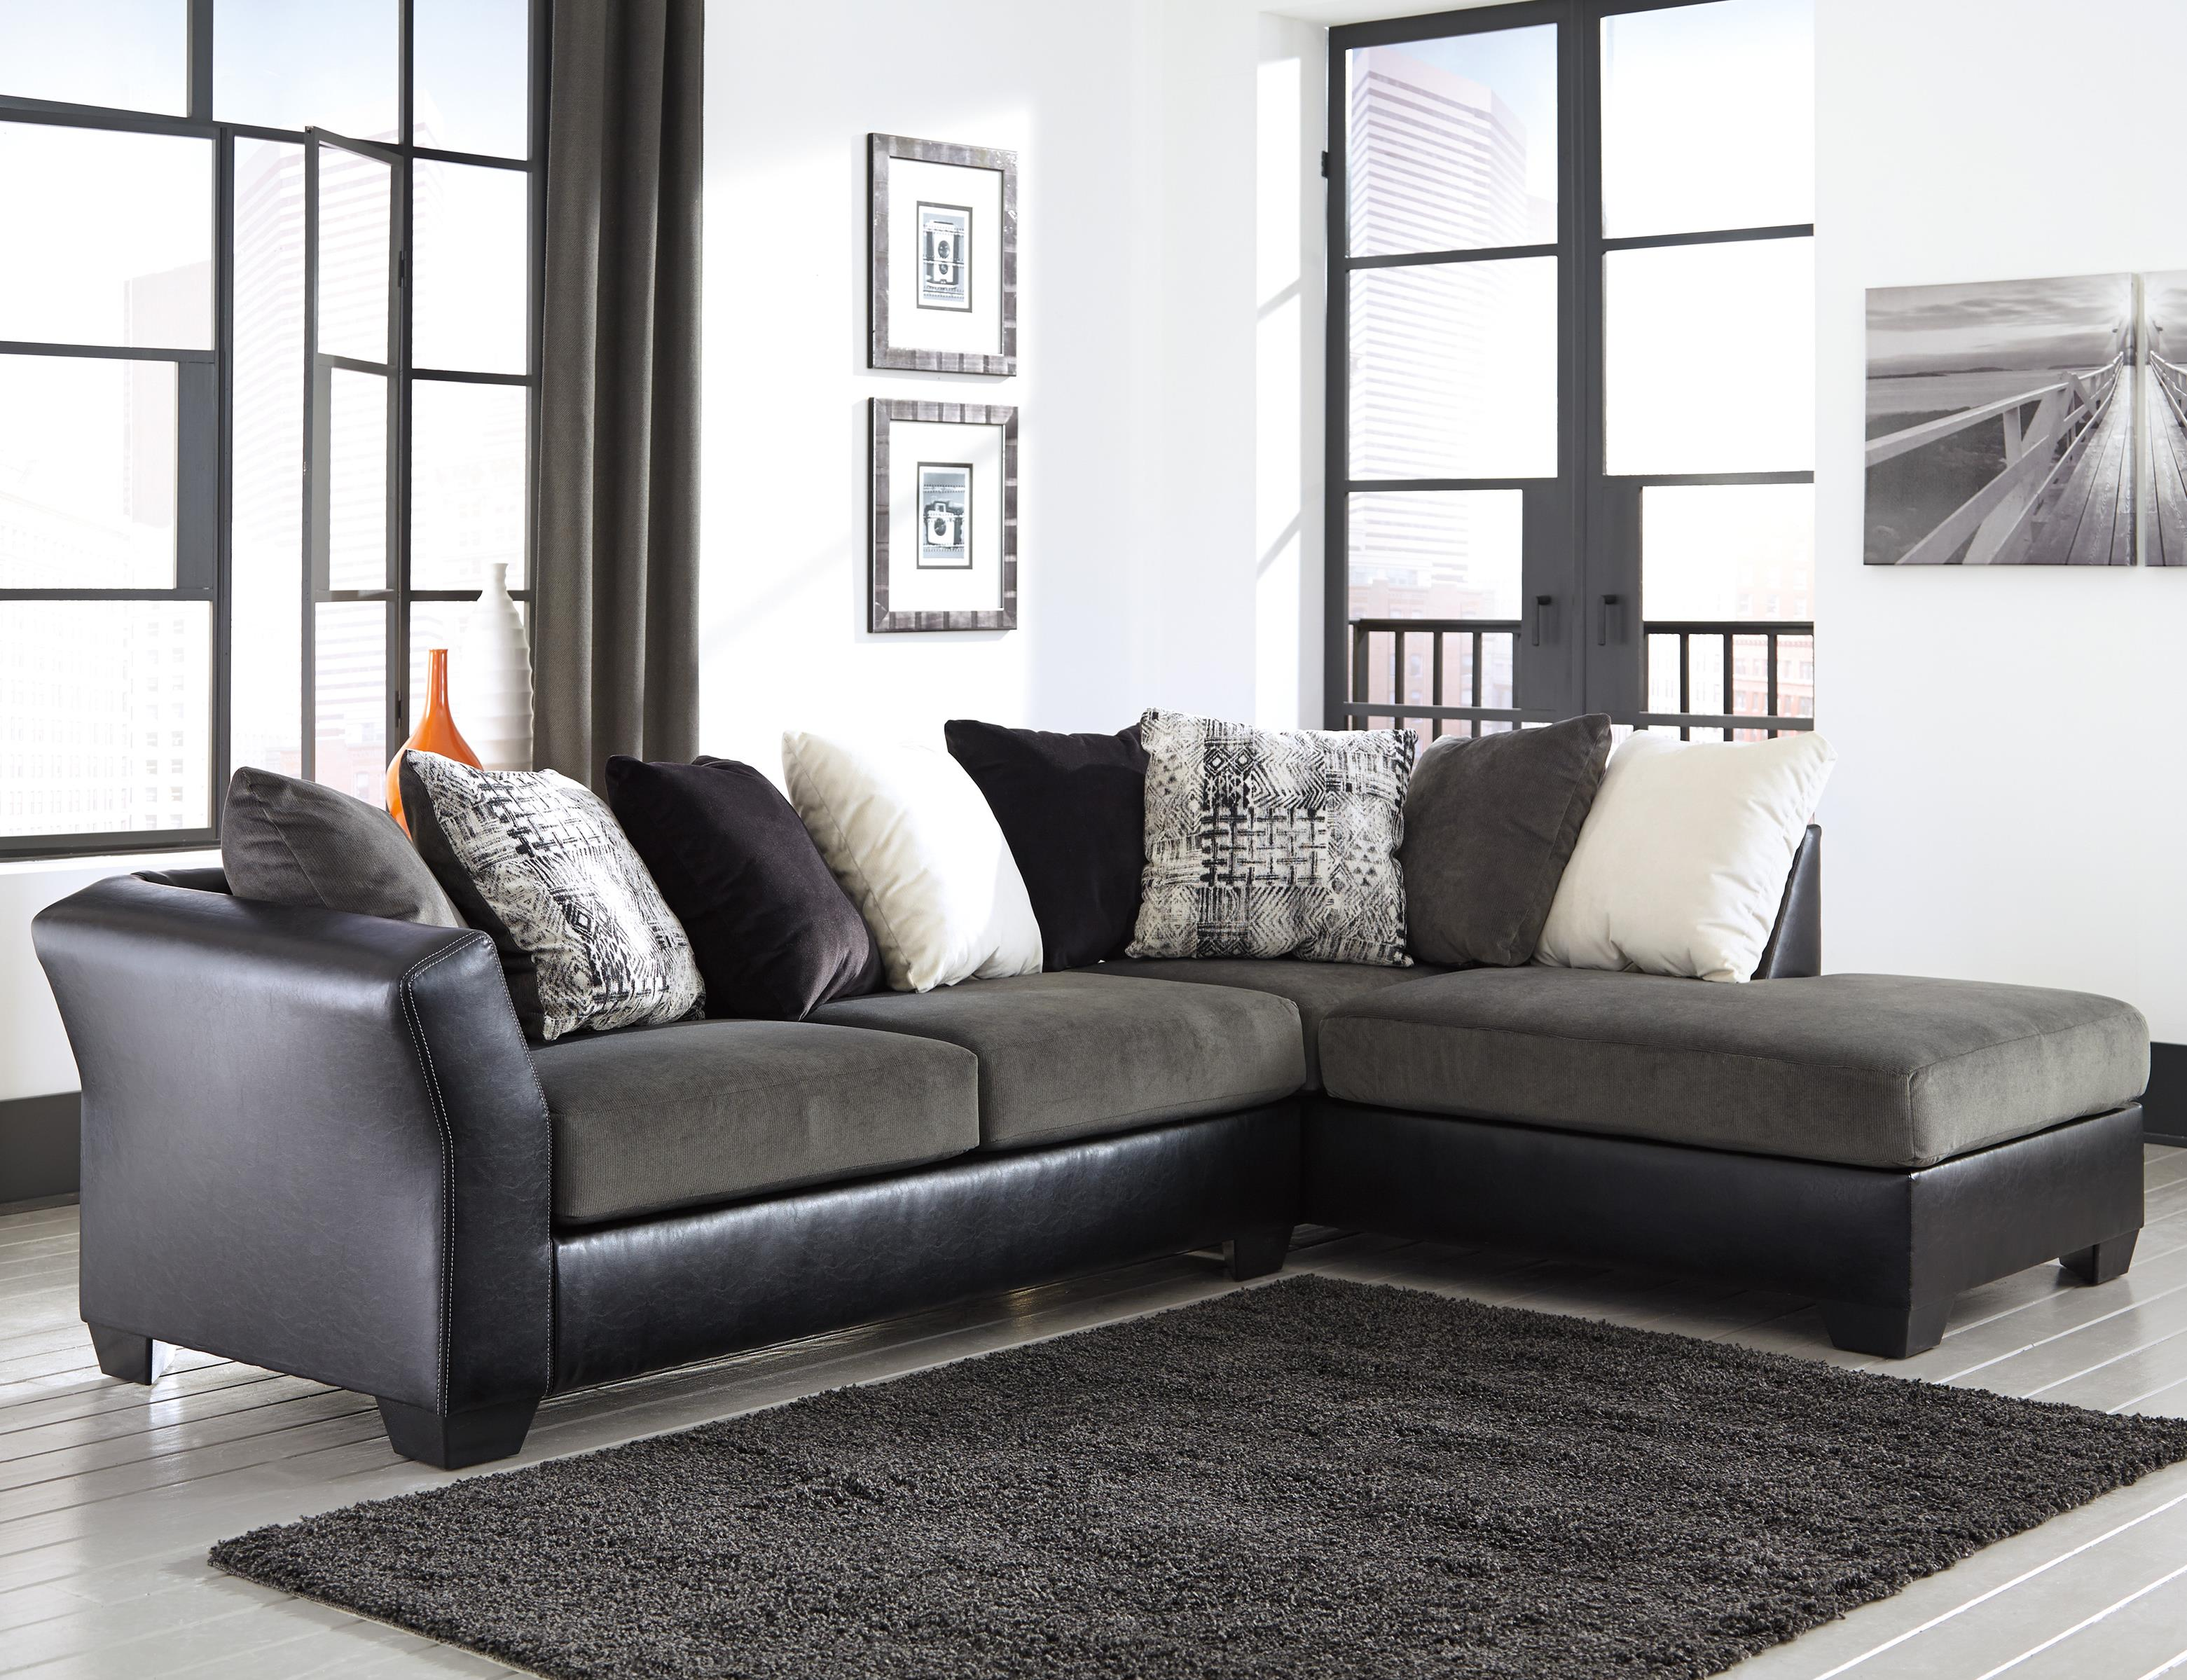 Signature Design by Ashley Armant Contemporary 2 Piece Sectional